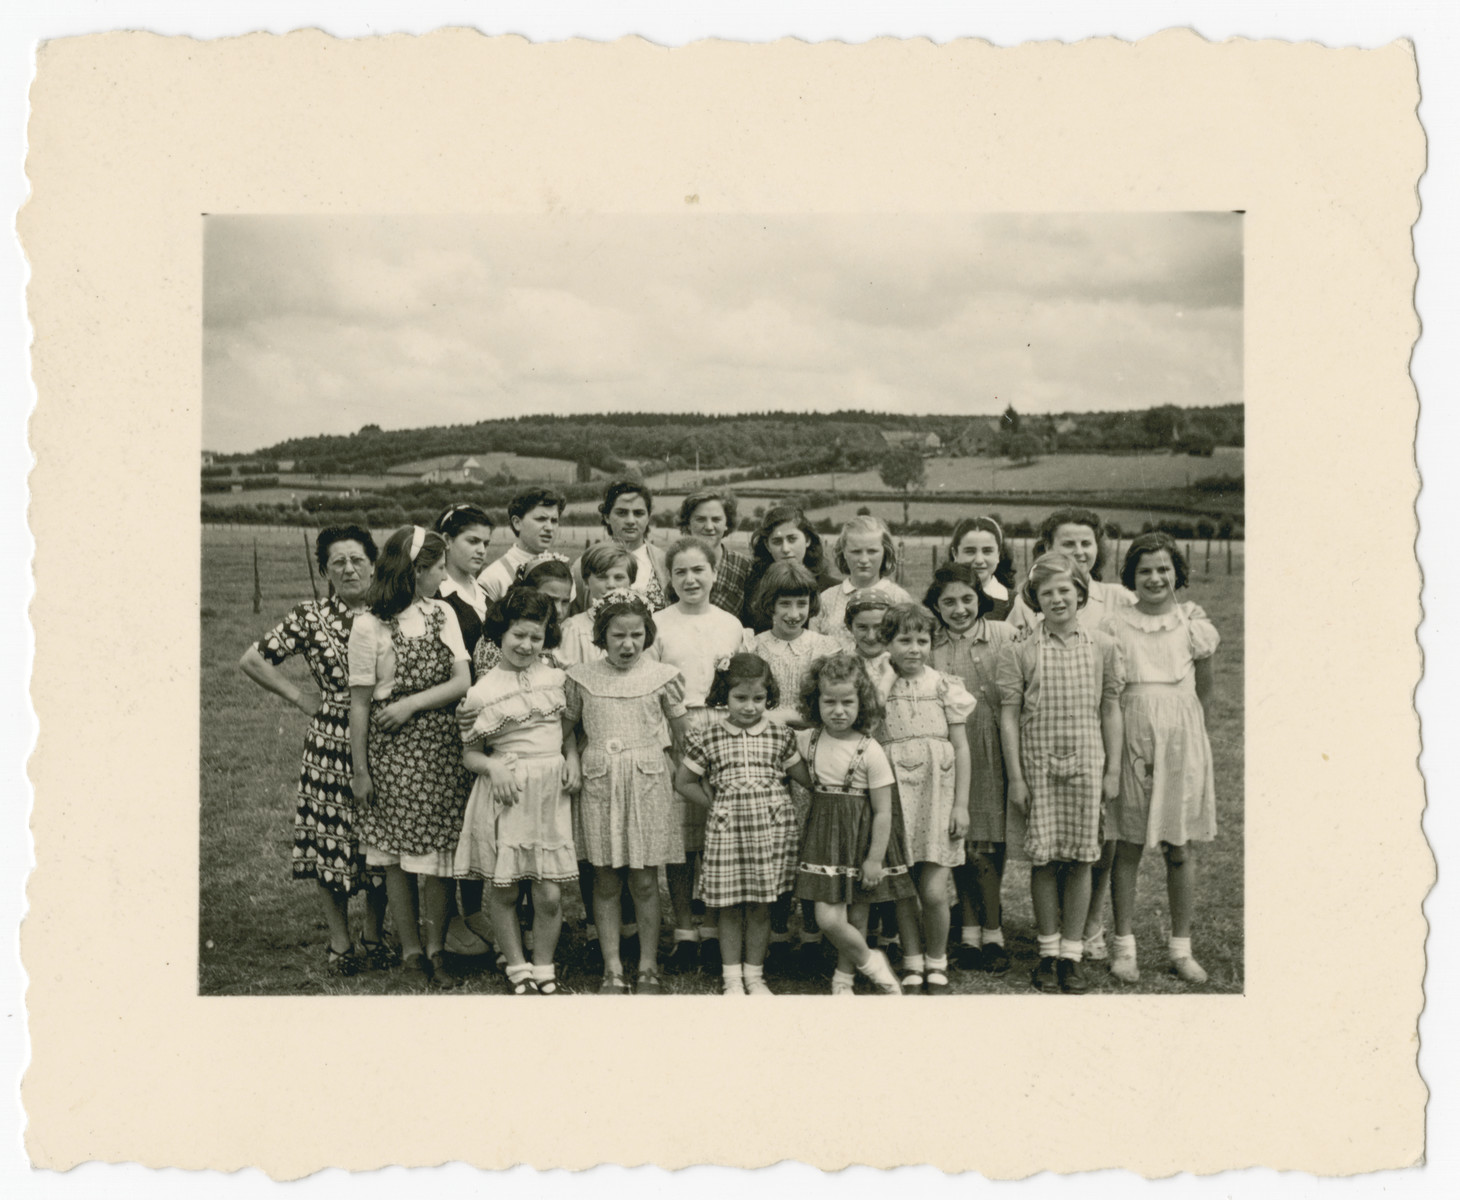 Girls from the Tiefenbrunner children's home pose while on an outing to the Belgian countyside.  In the back row center are Giselle and Berta.